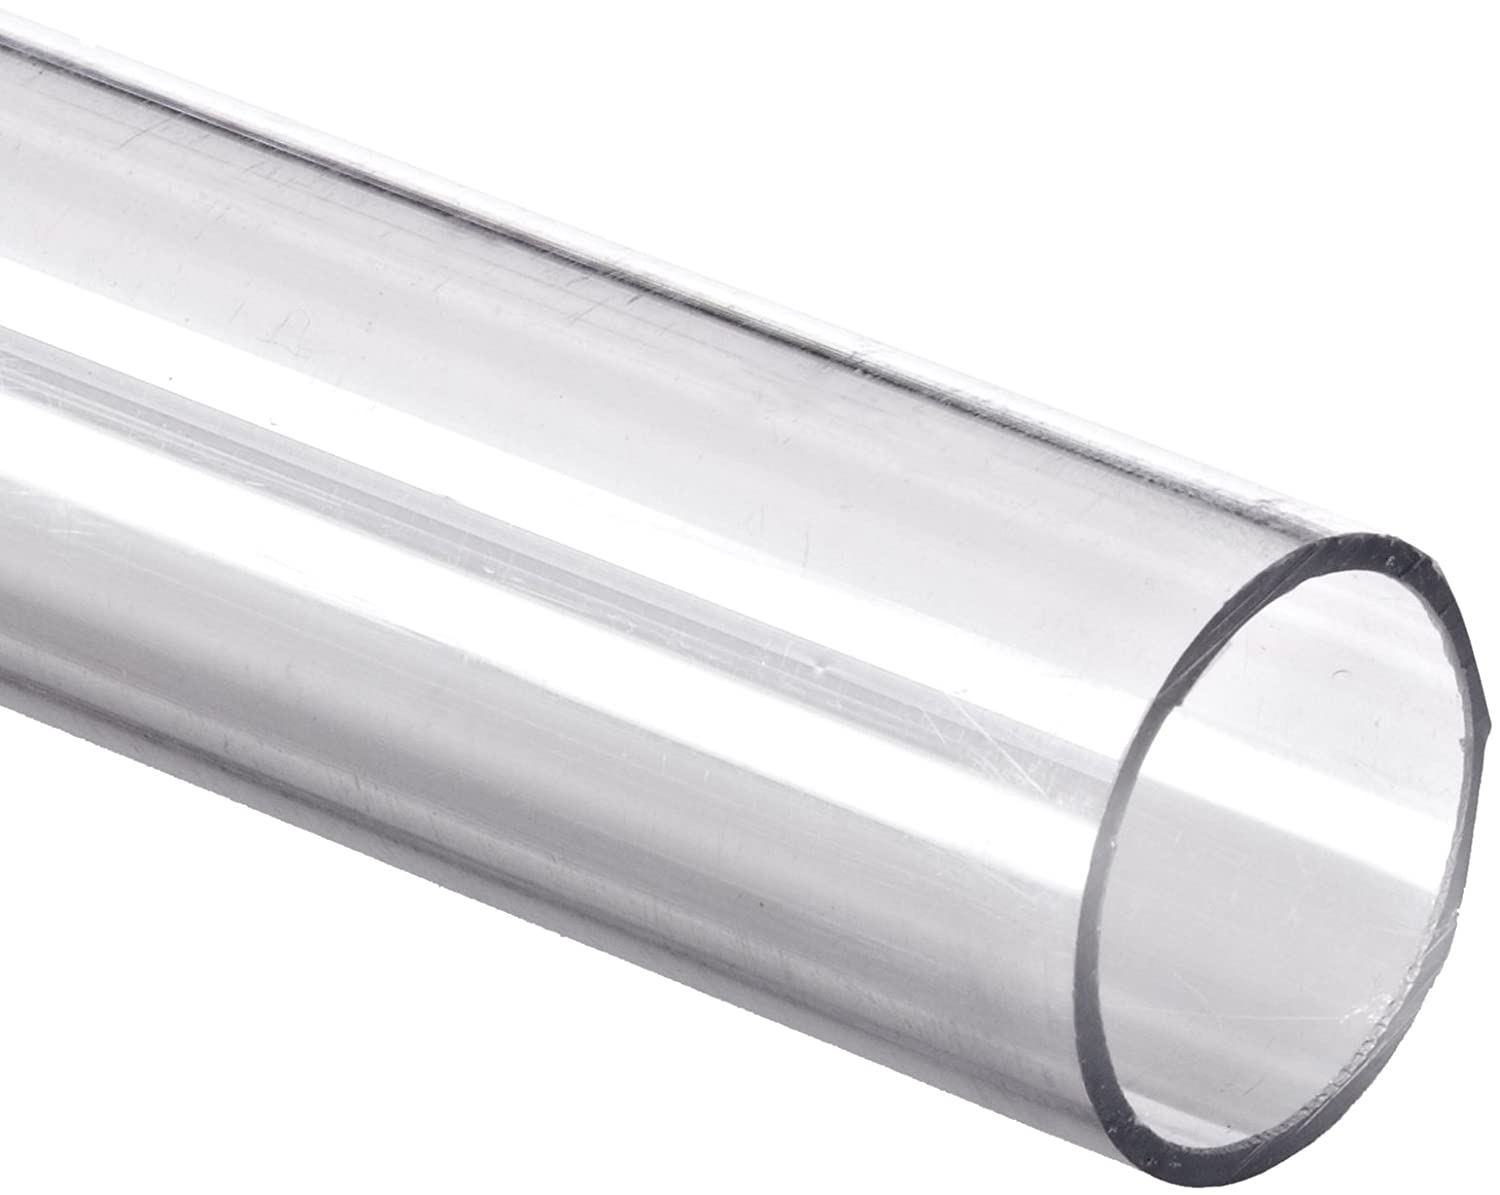 "2 pc 5//8/"" OD x 1//2/"" ID DIAMETER THIN WALL CLEAR ACRYLIC PLEXIGLASS TUBES 36/"" 3FT"